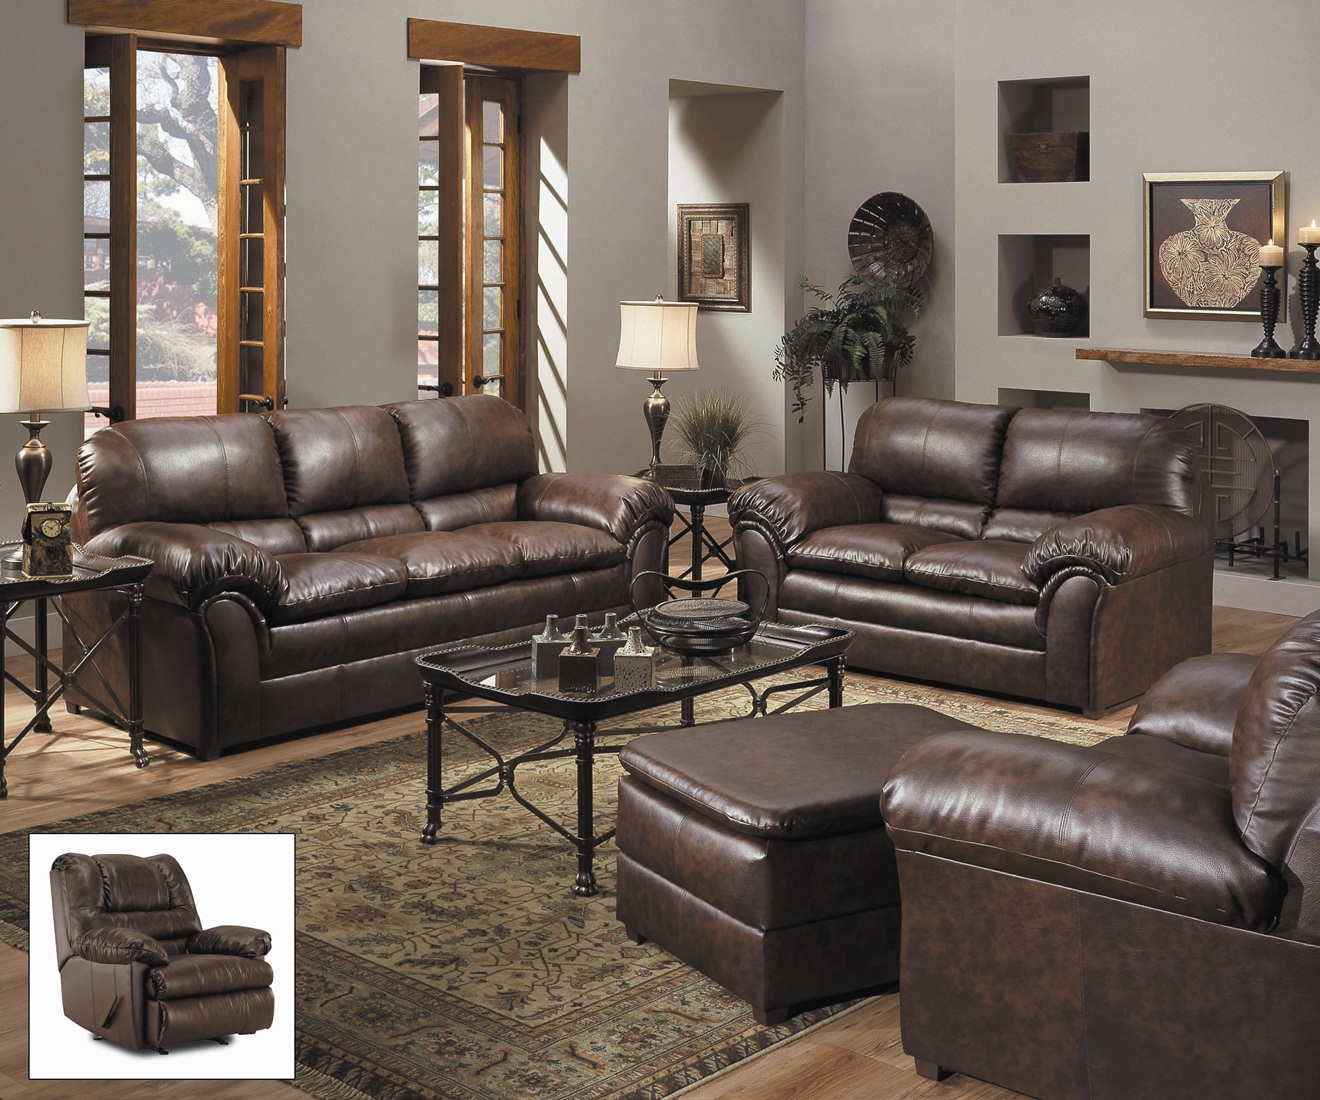 Geneva Classic Brown Bonded Leather Living Room Furniture Couch Set